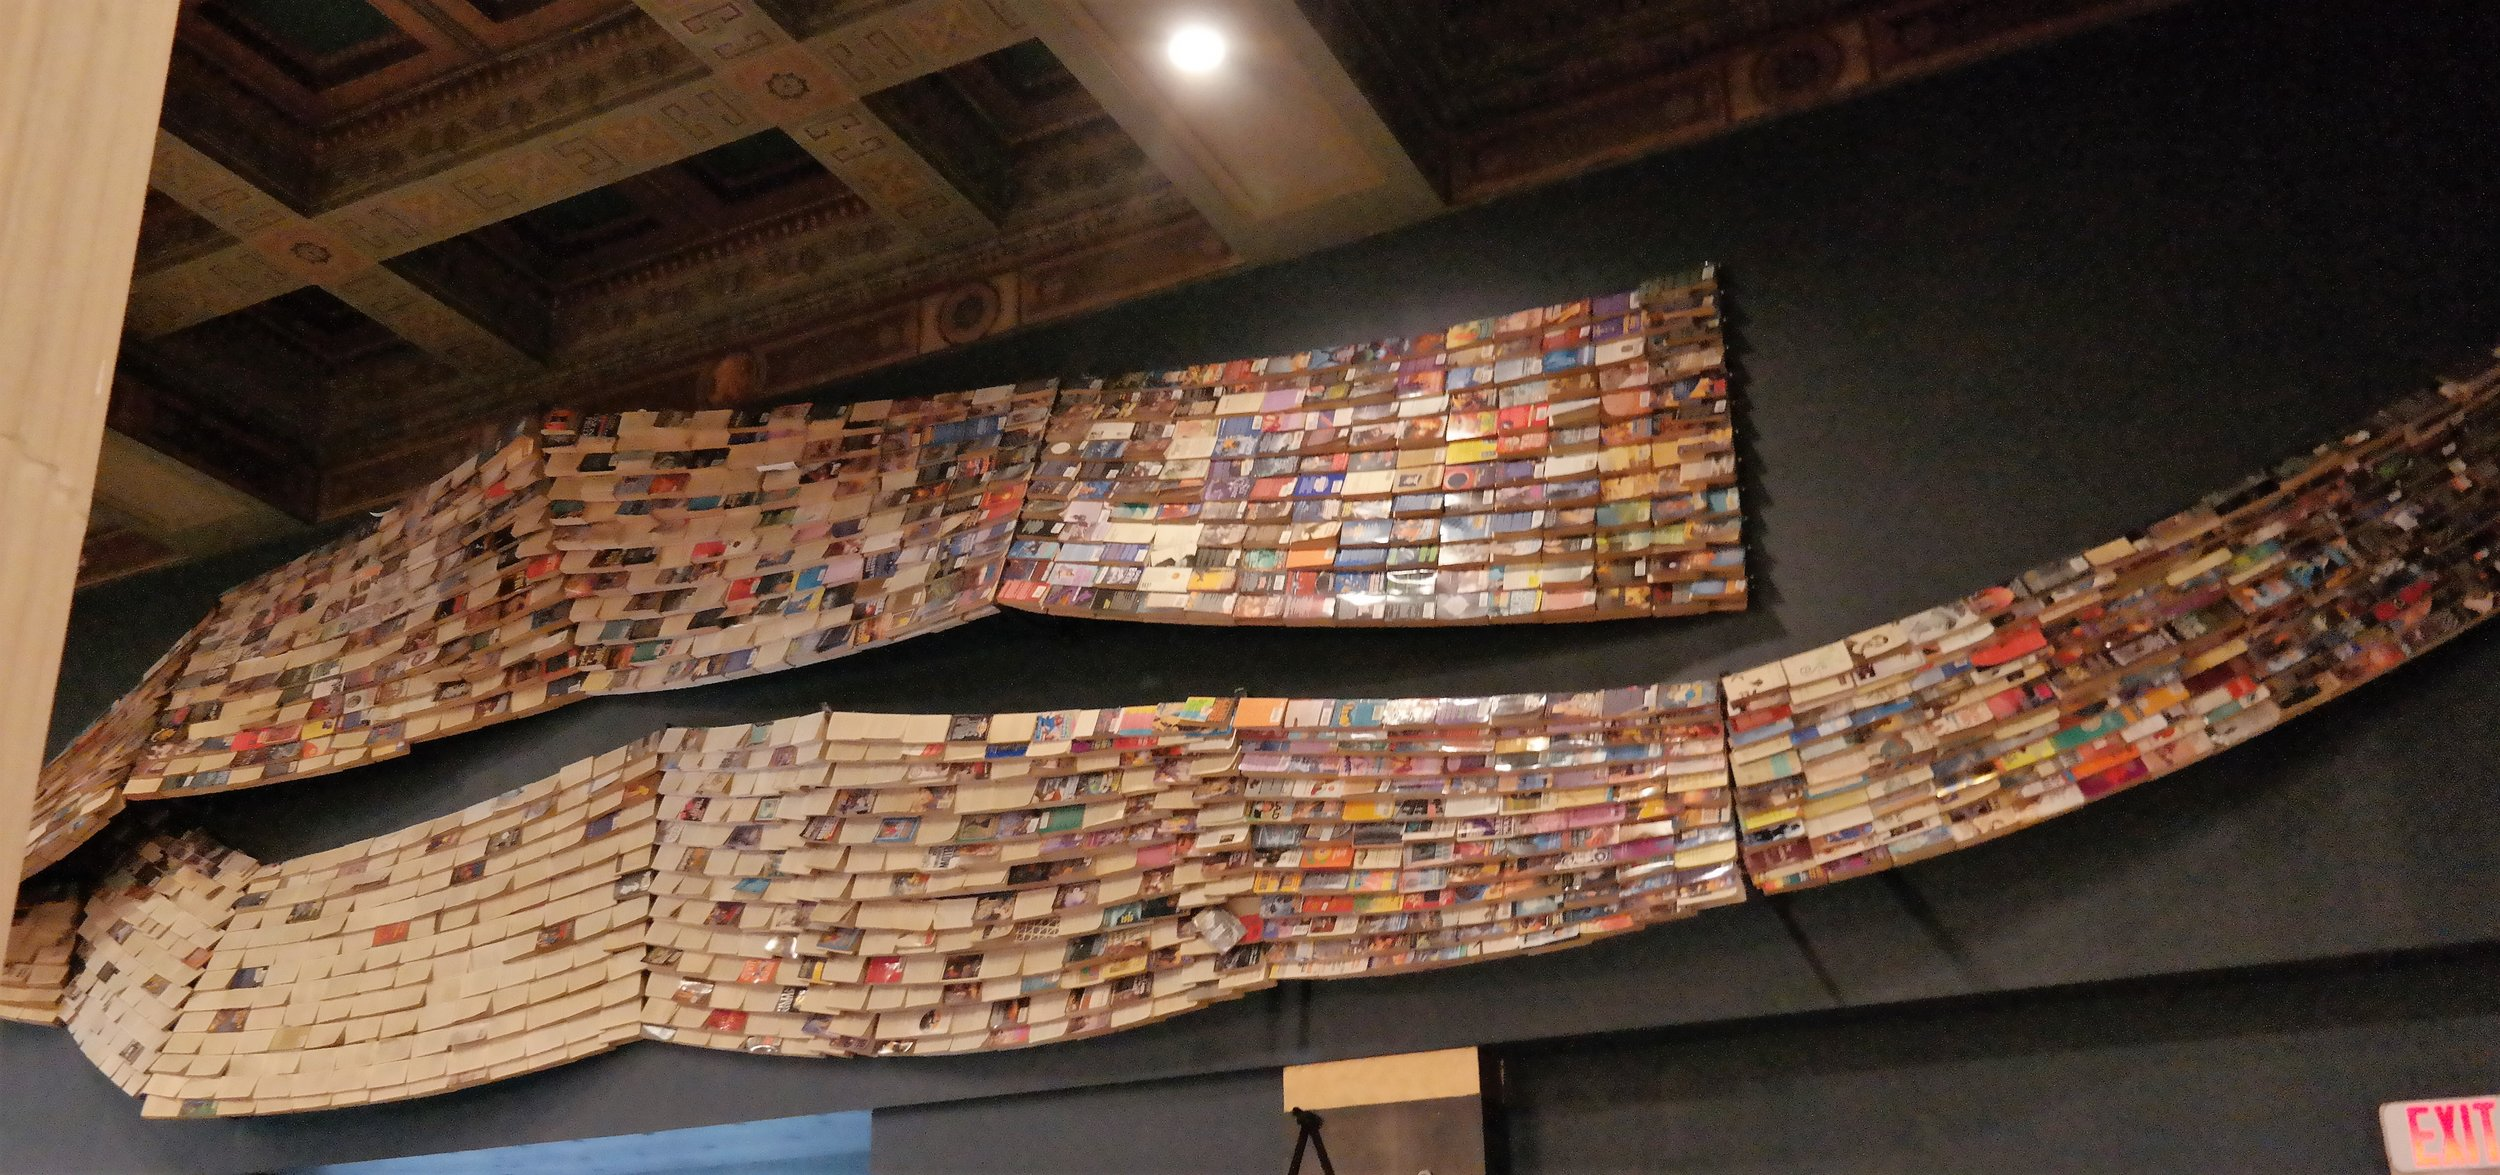 An art piece made out of books in the Last Bookstore.